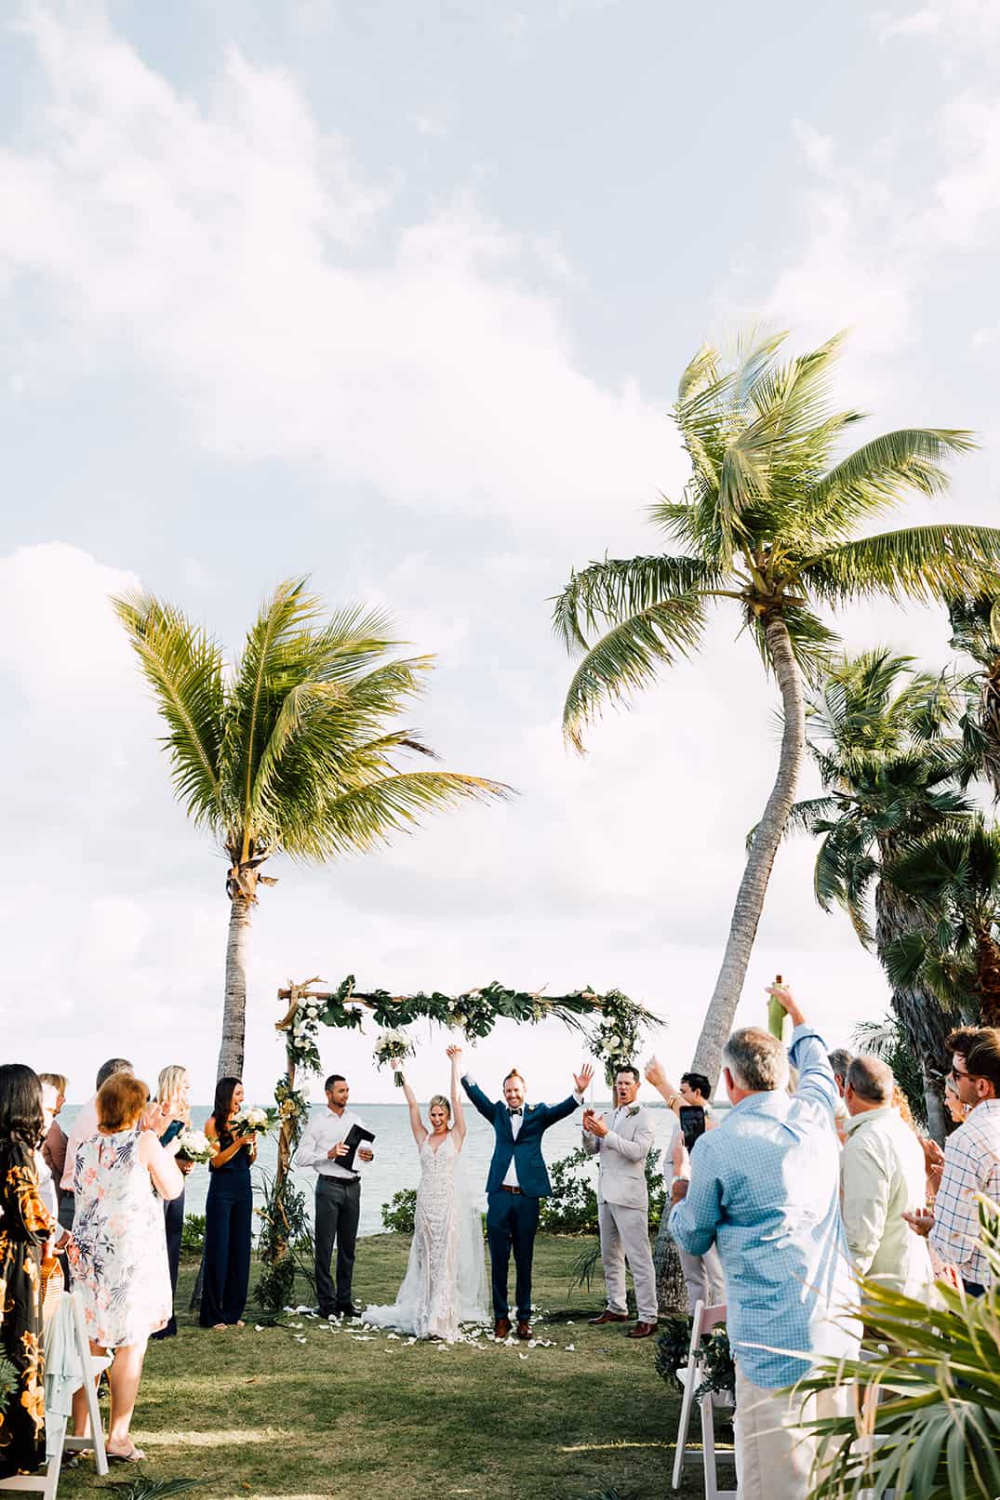 Bahamas Boating Lovers Tie The Knot In Abaco Chic Bahamas Weddings Bahamas Wedding Bahamas Island Island Weddings